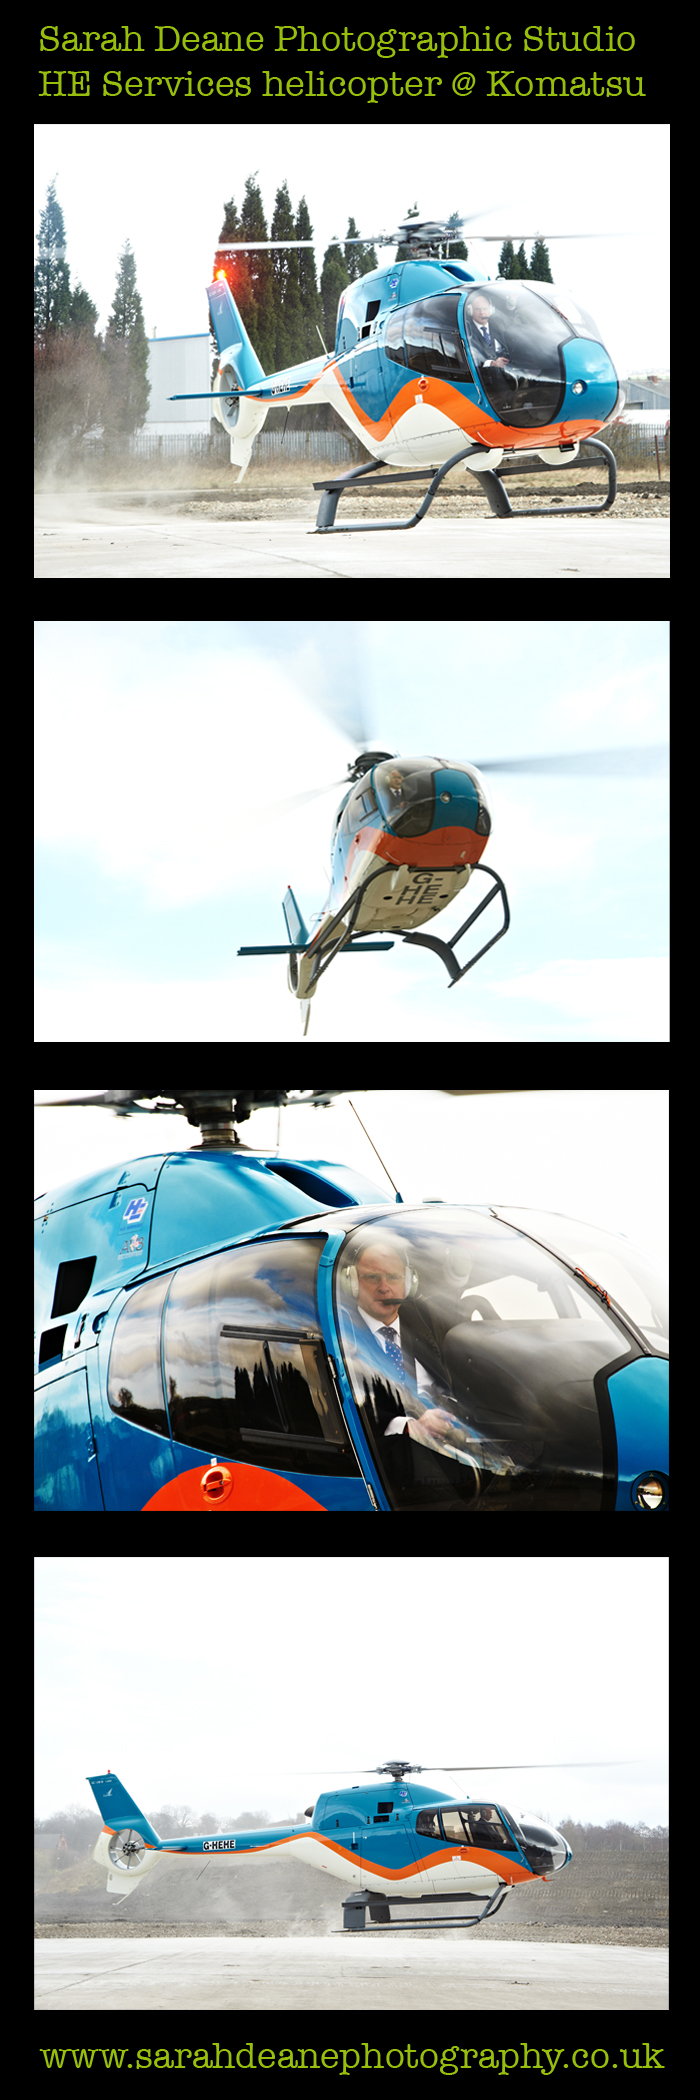 HE Services helicopter photos for Komatsu